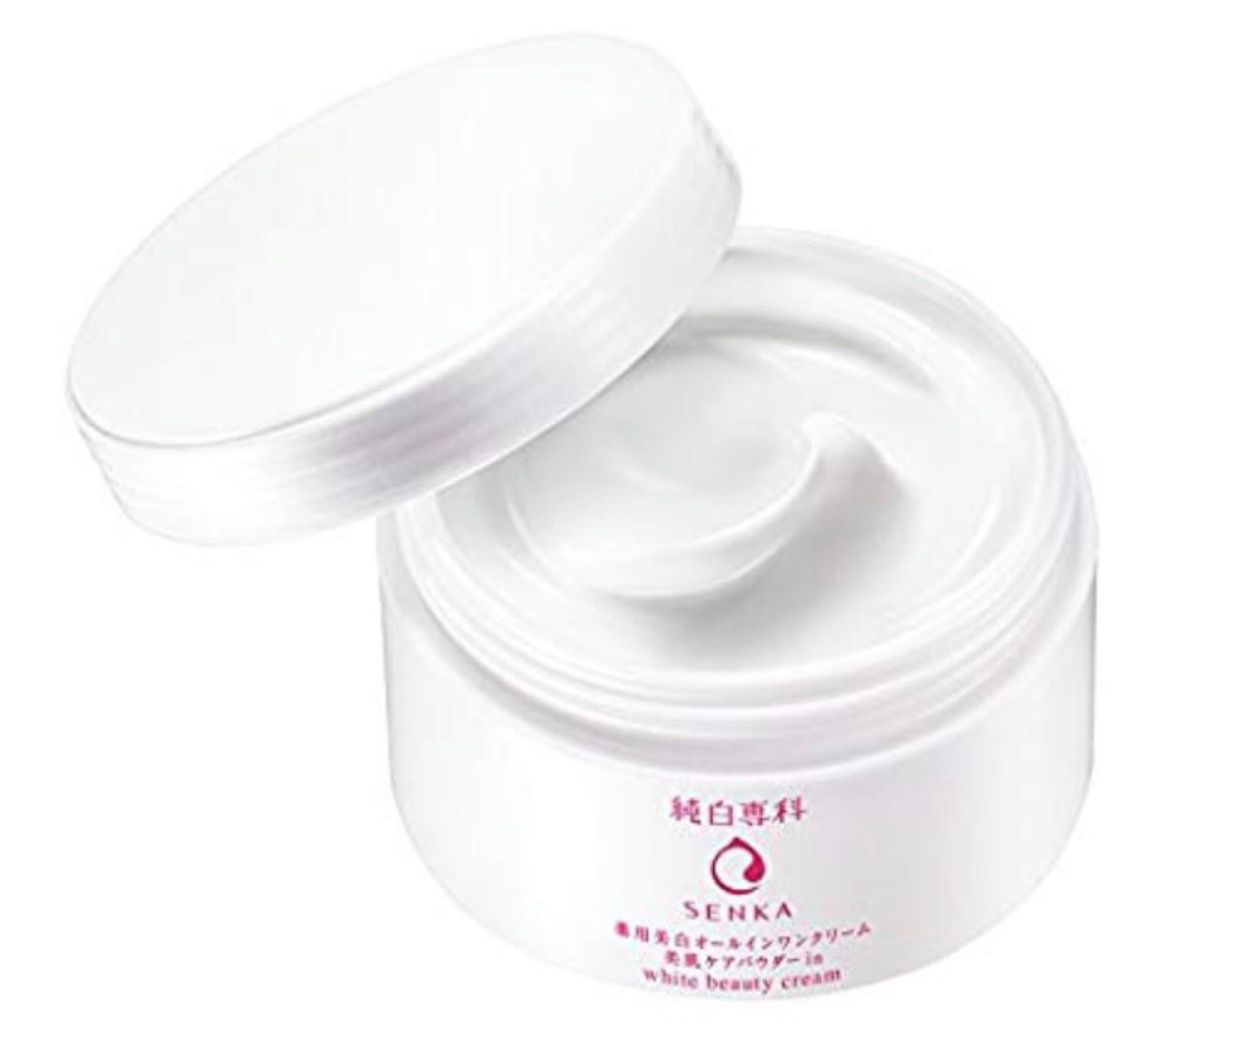 Shiseido Junpaku Senka White Beauty Cream 100g